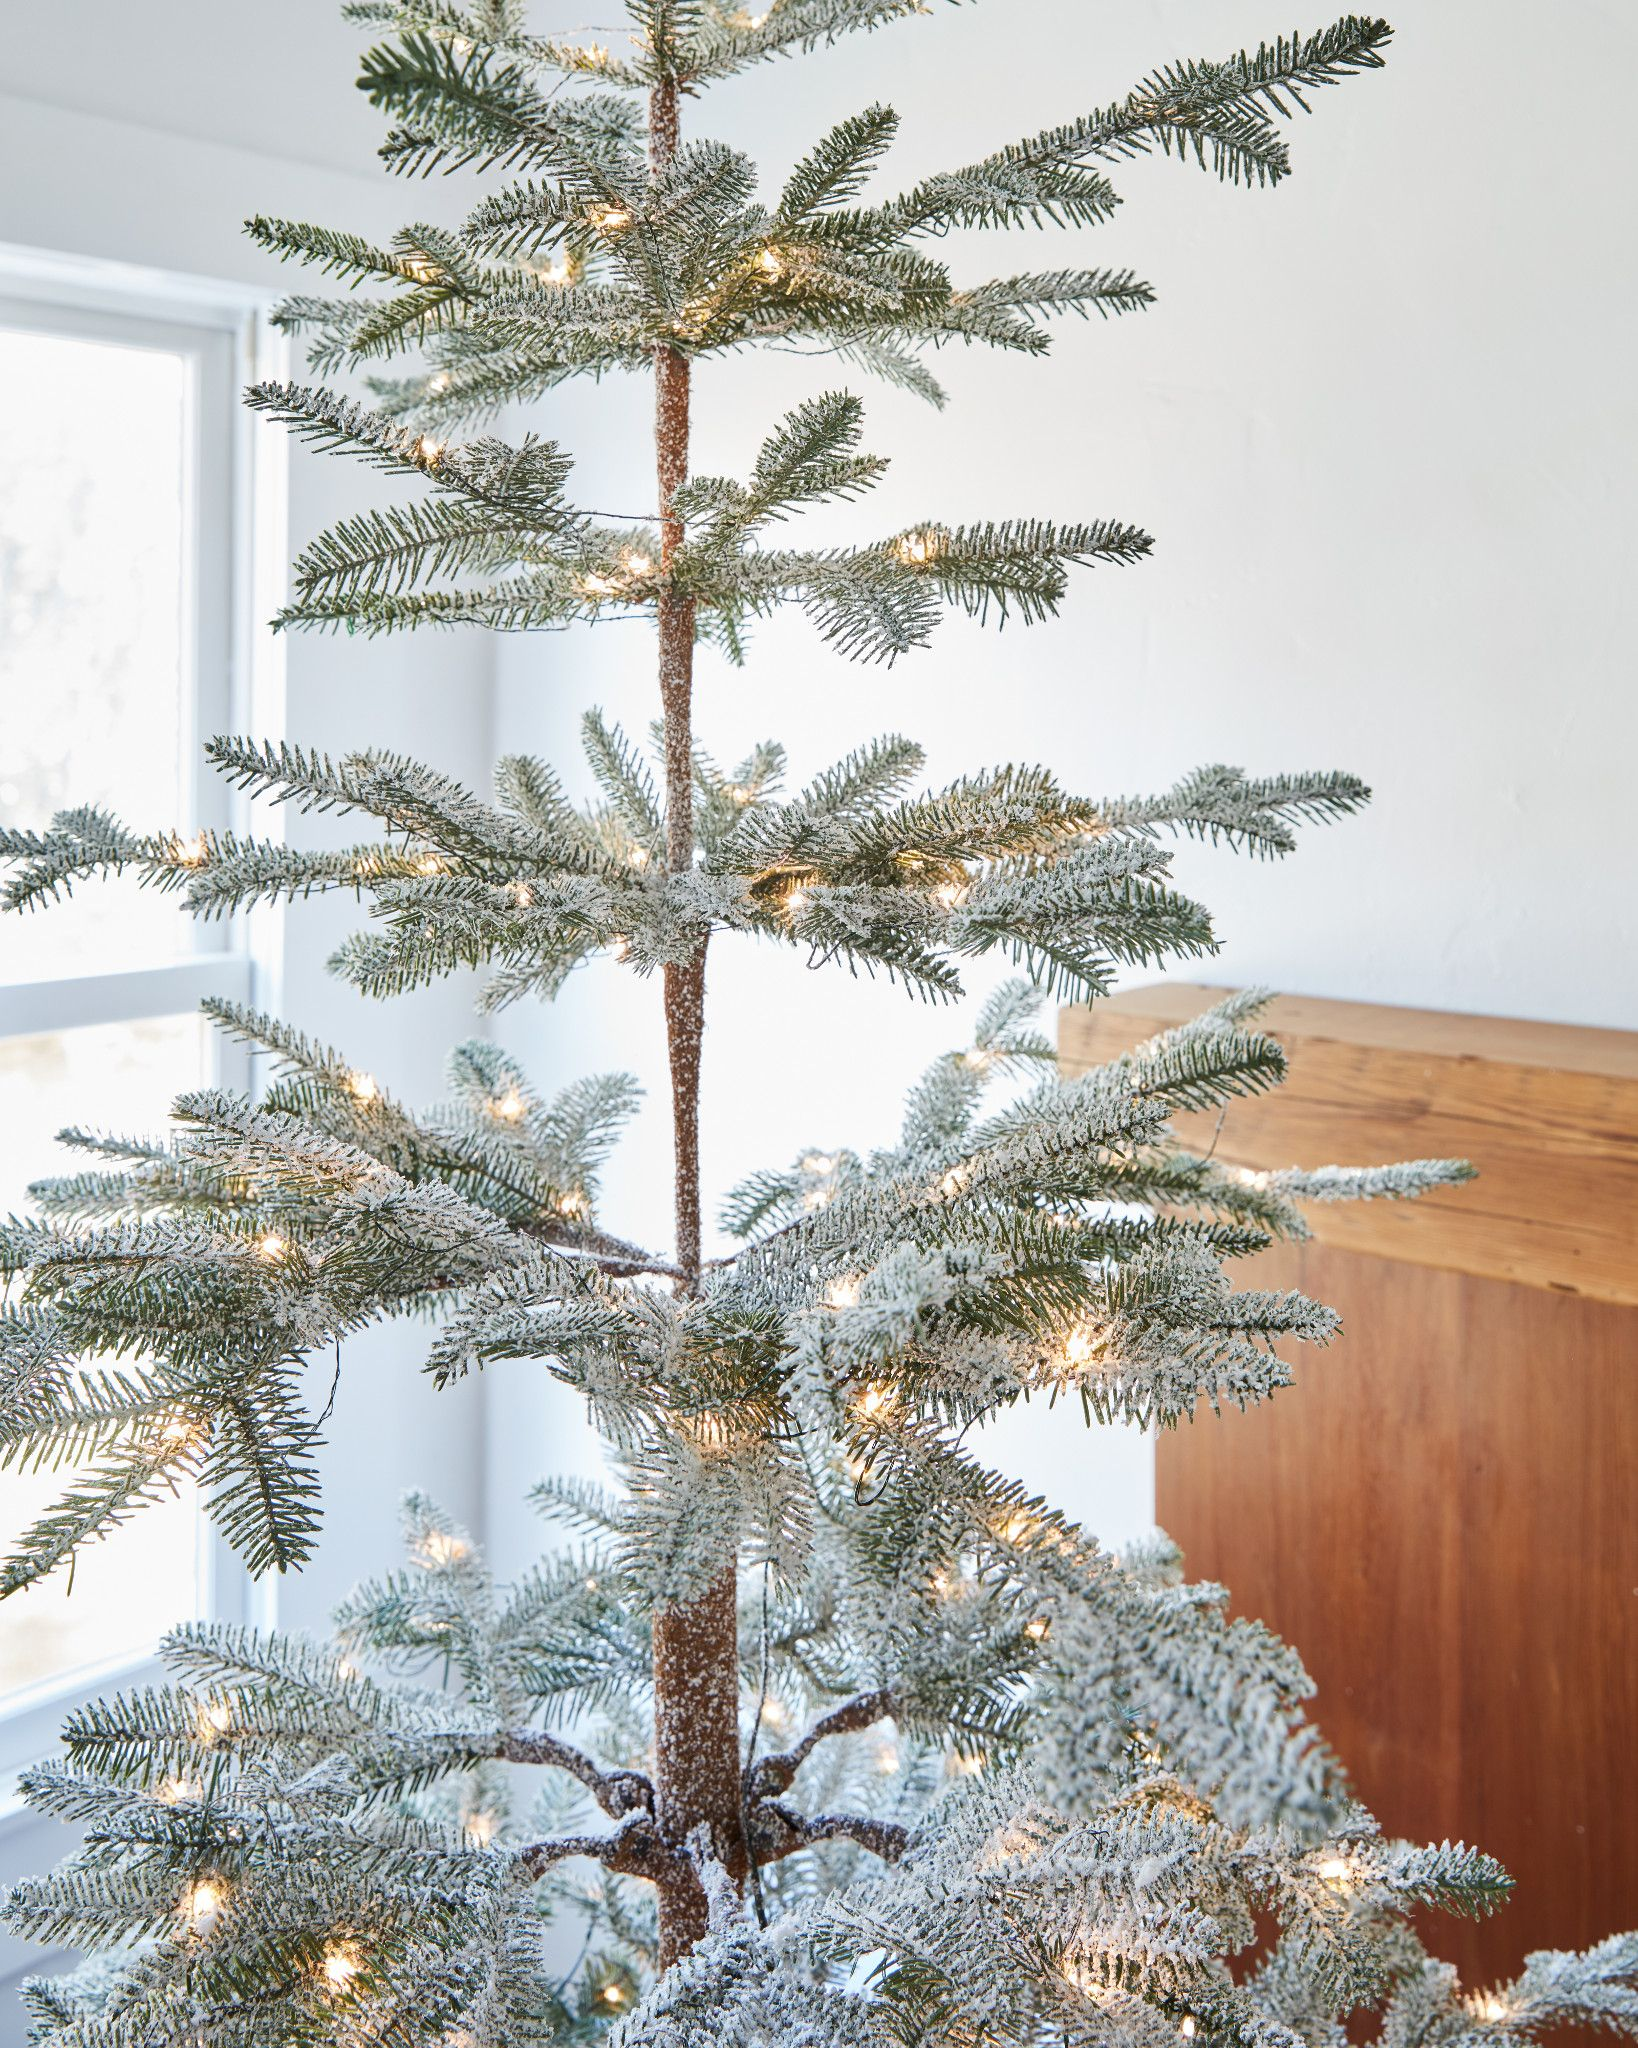 Artificial Flocked Christmas Trees For Sale